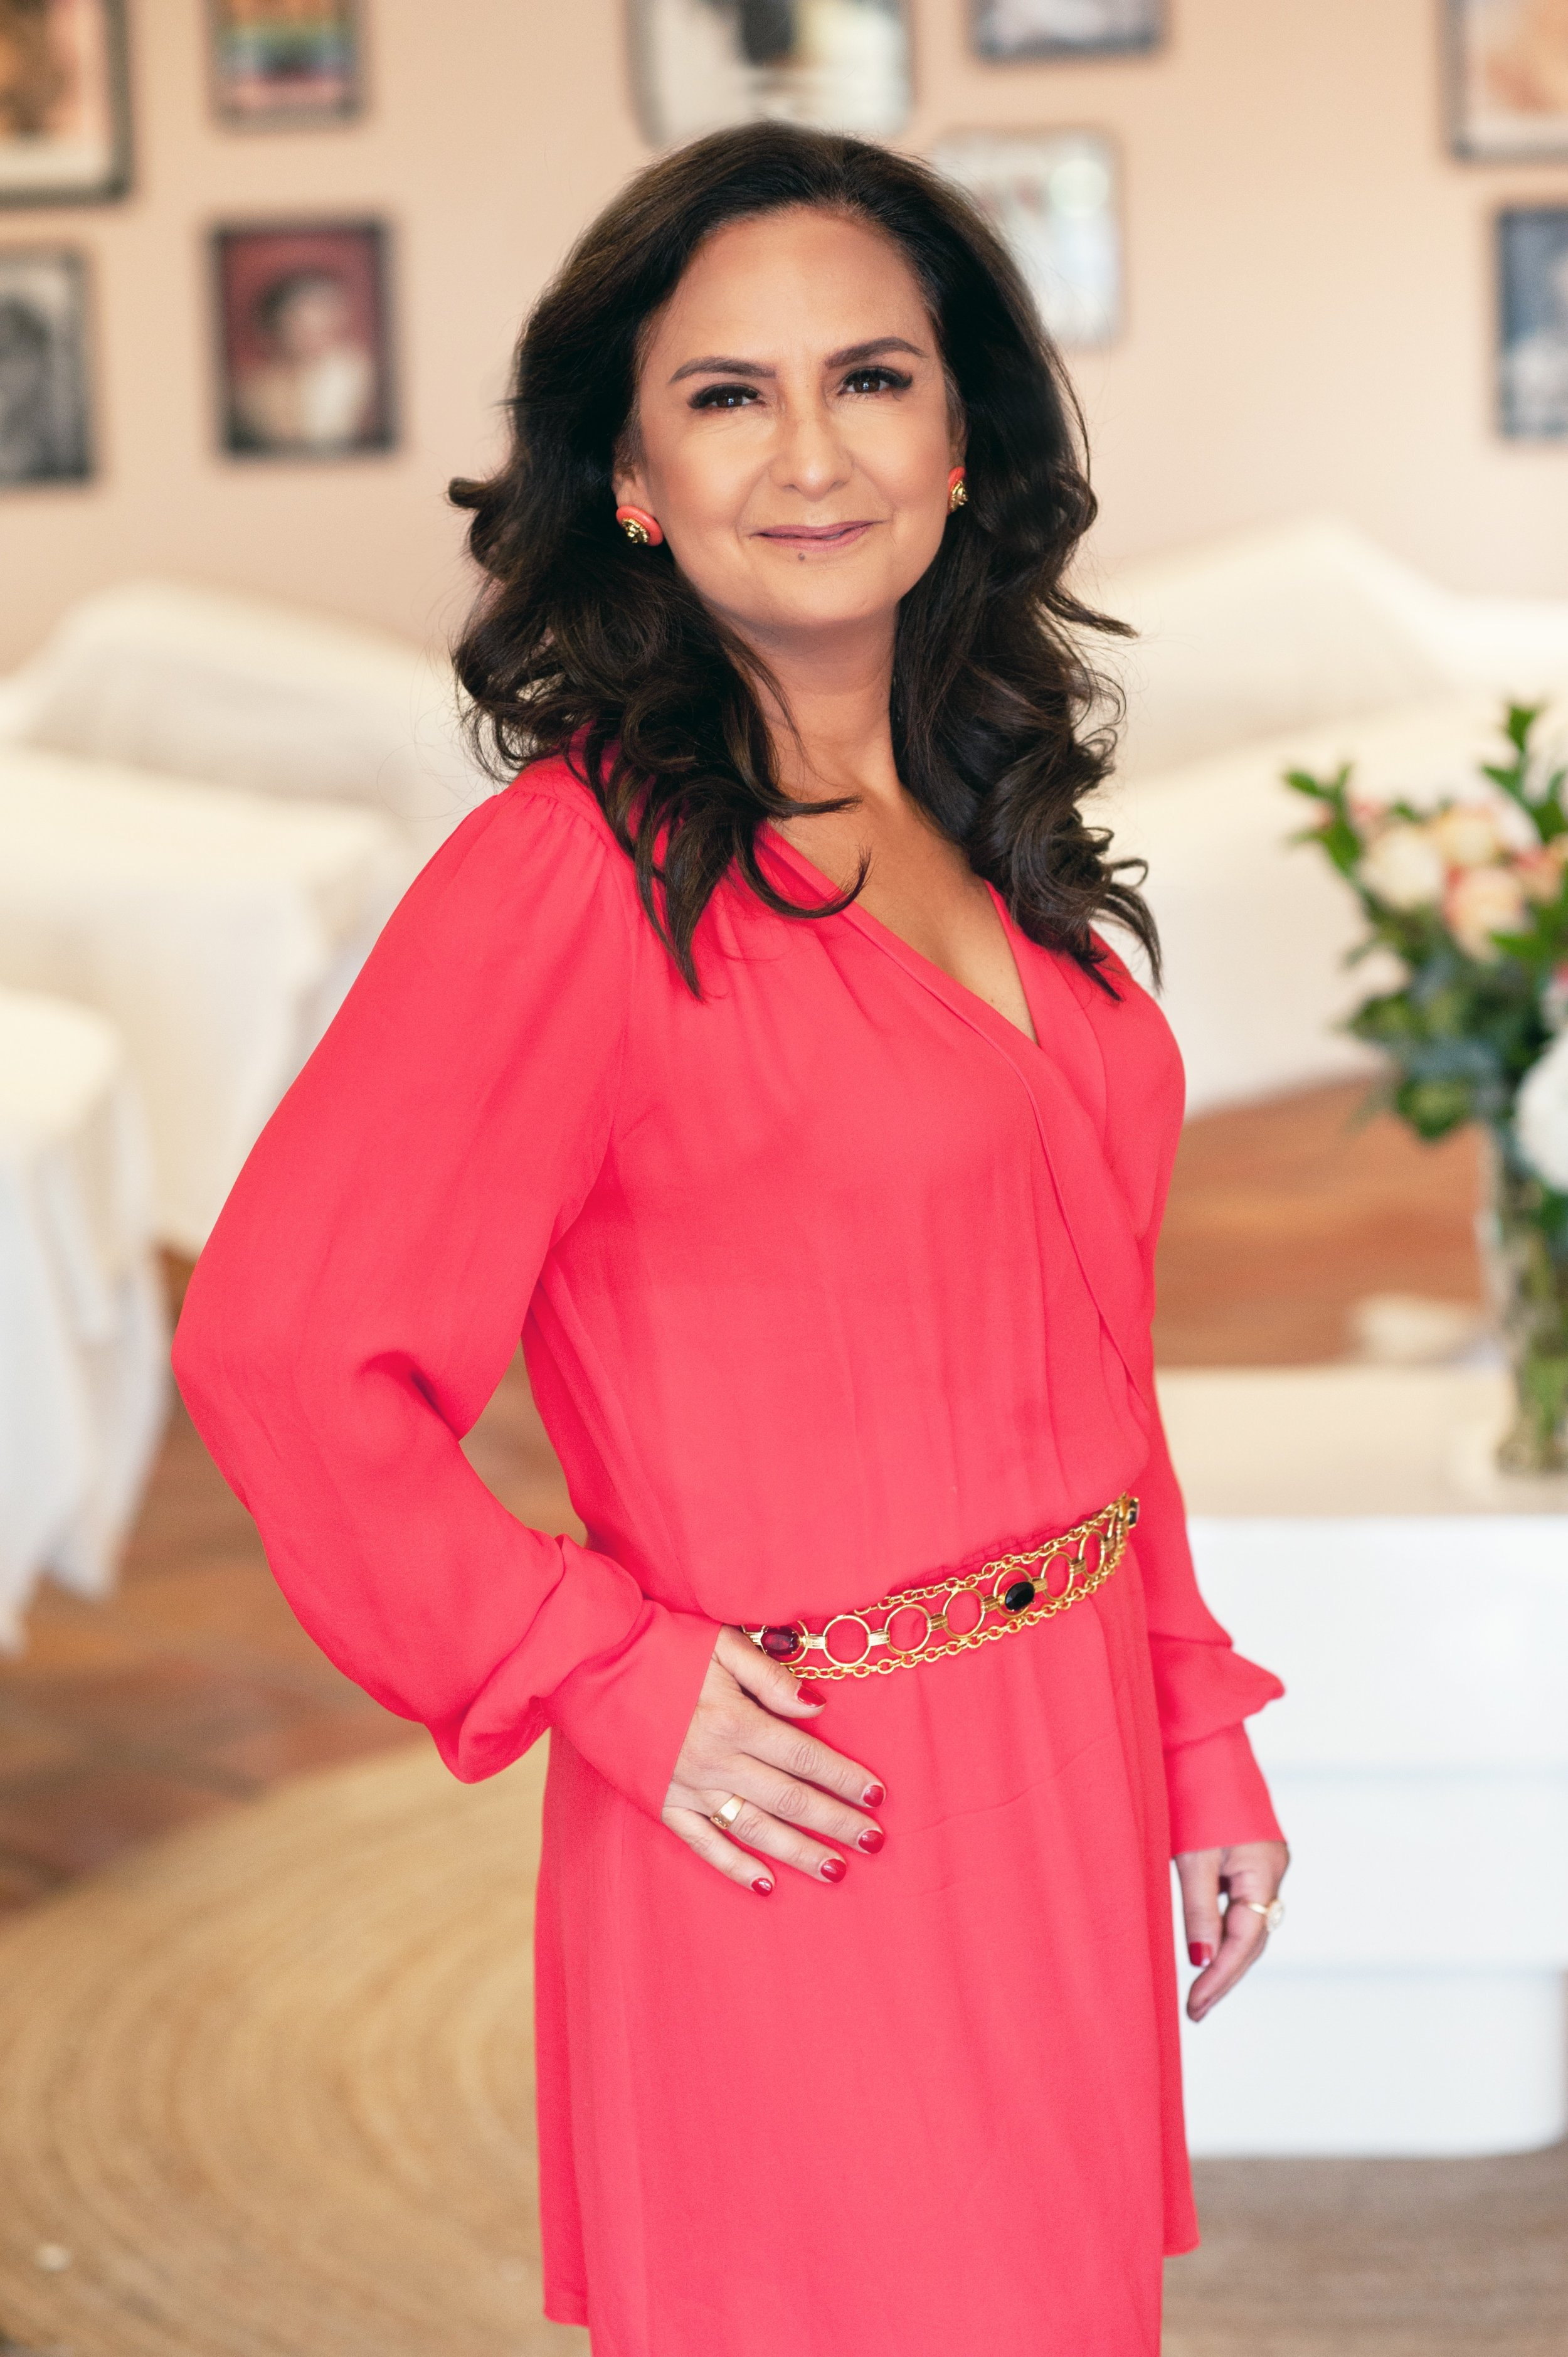 Belinda WellmanCo-Owner, Master StylistLicensed EstheticianFounder of thelashrevolution.comTrained in Classic & Volume Lash Application, Educator in Lash Extension ApplicationNALA ACCREDITED MEMBER -